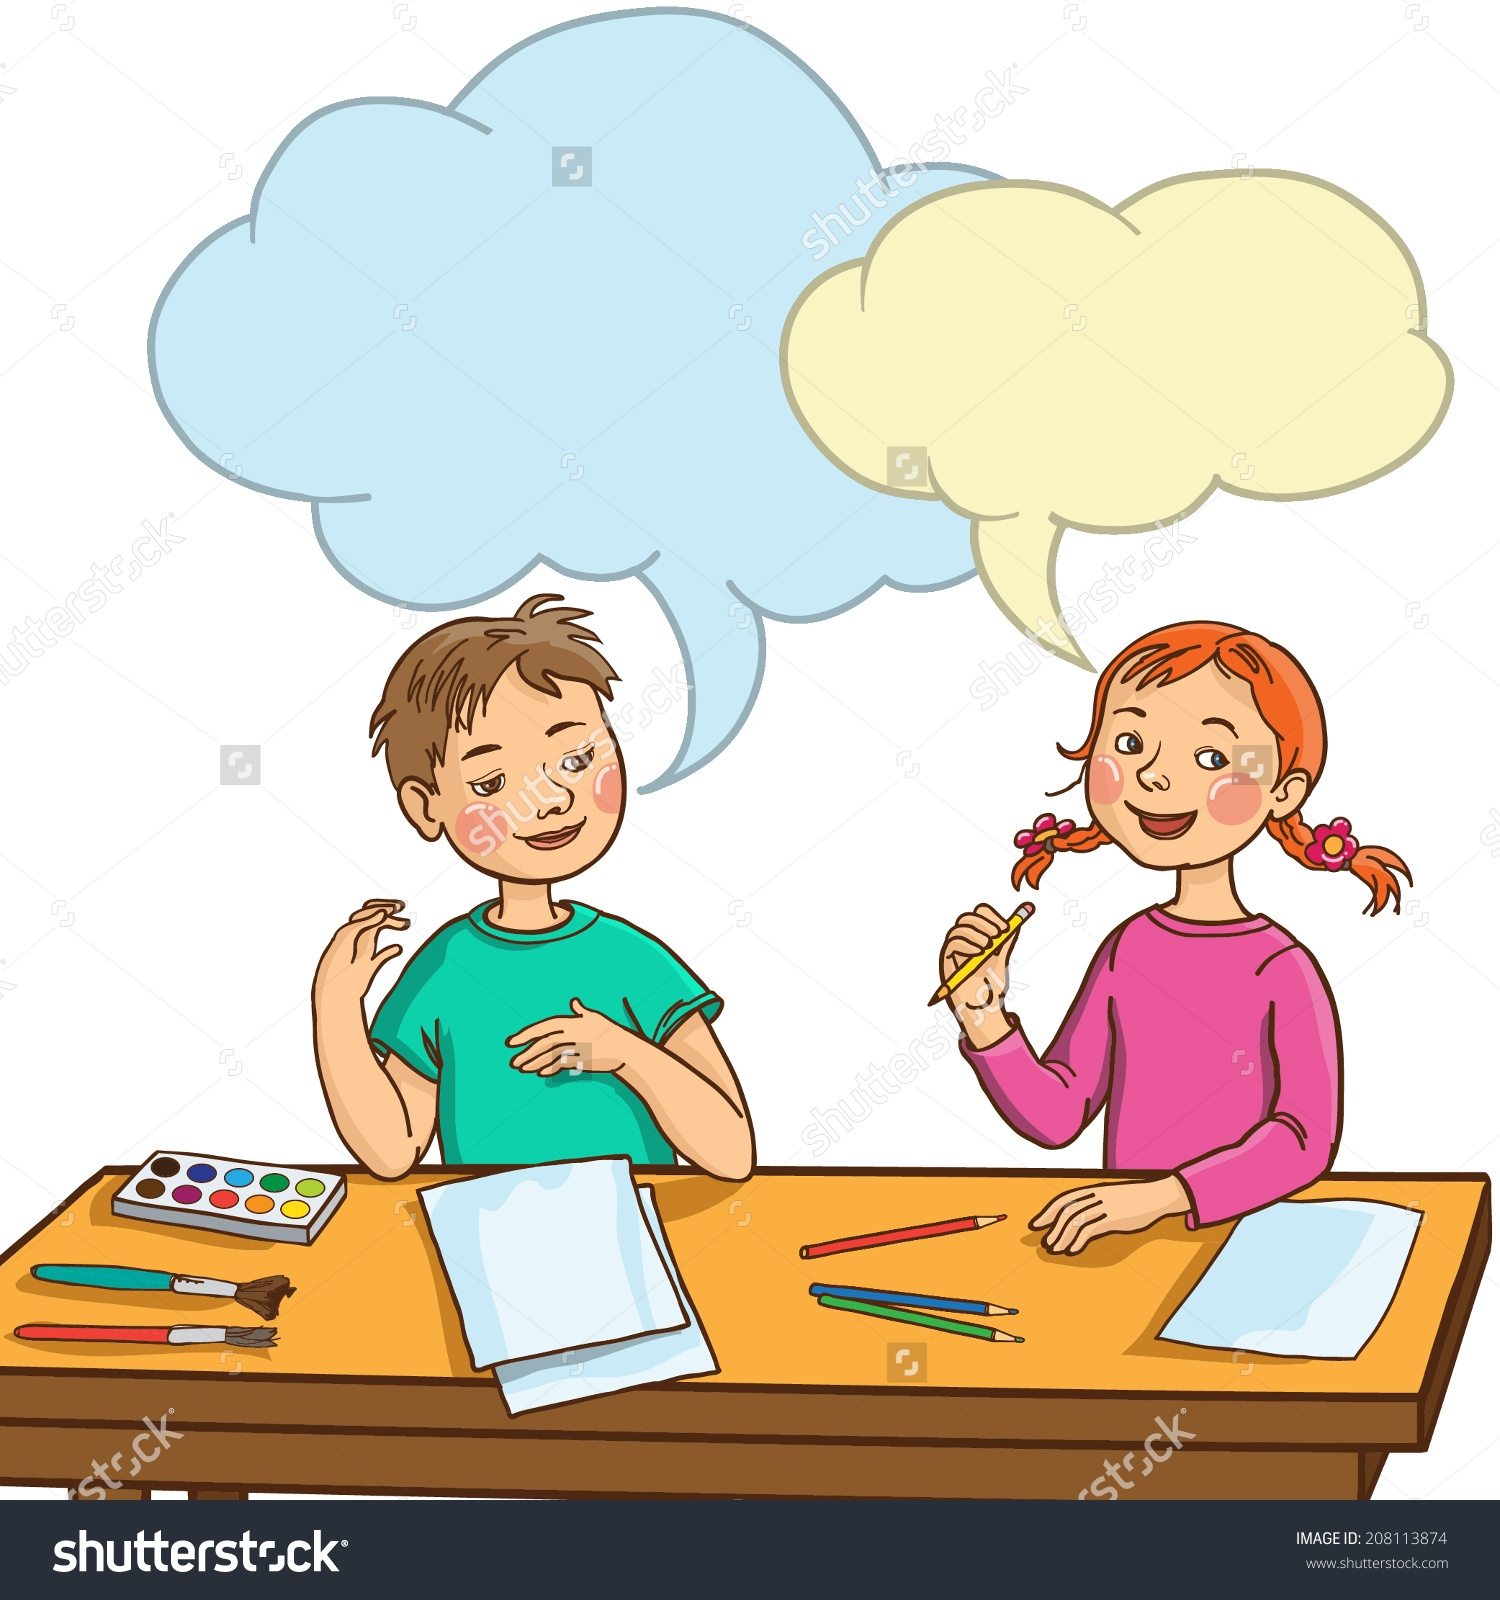 Students Talking In Class Clipart.